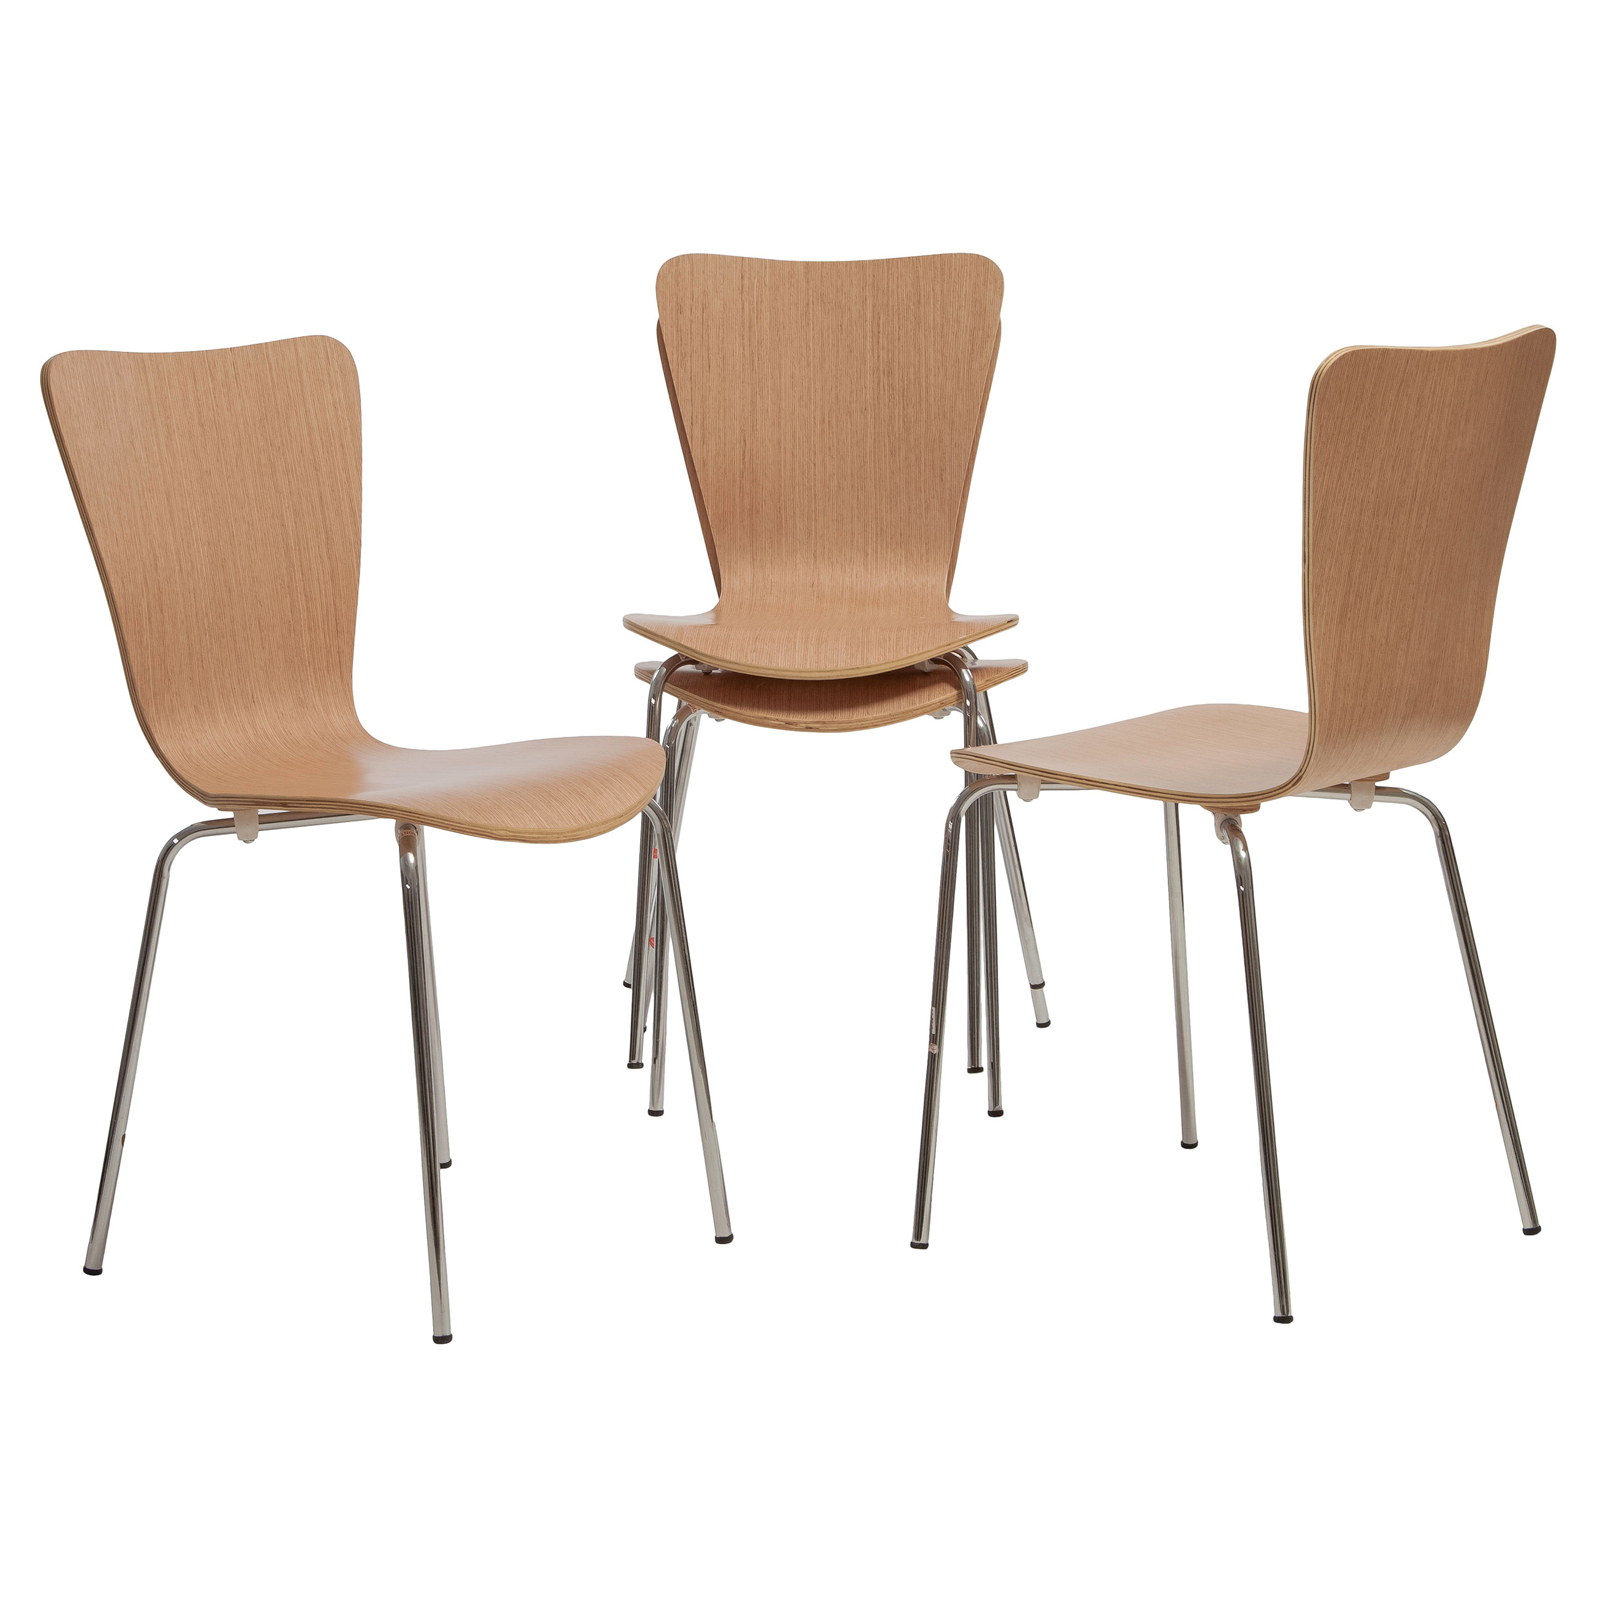 Steel stacking chairs 2